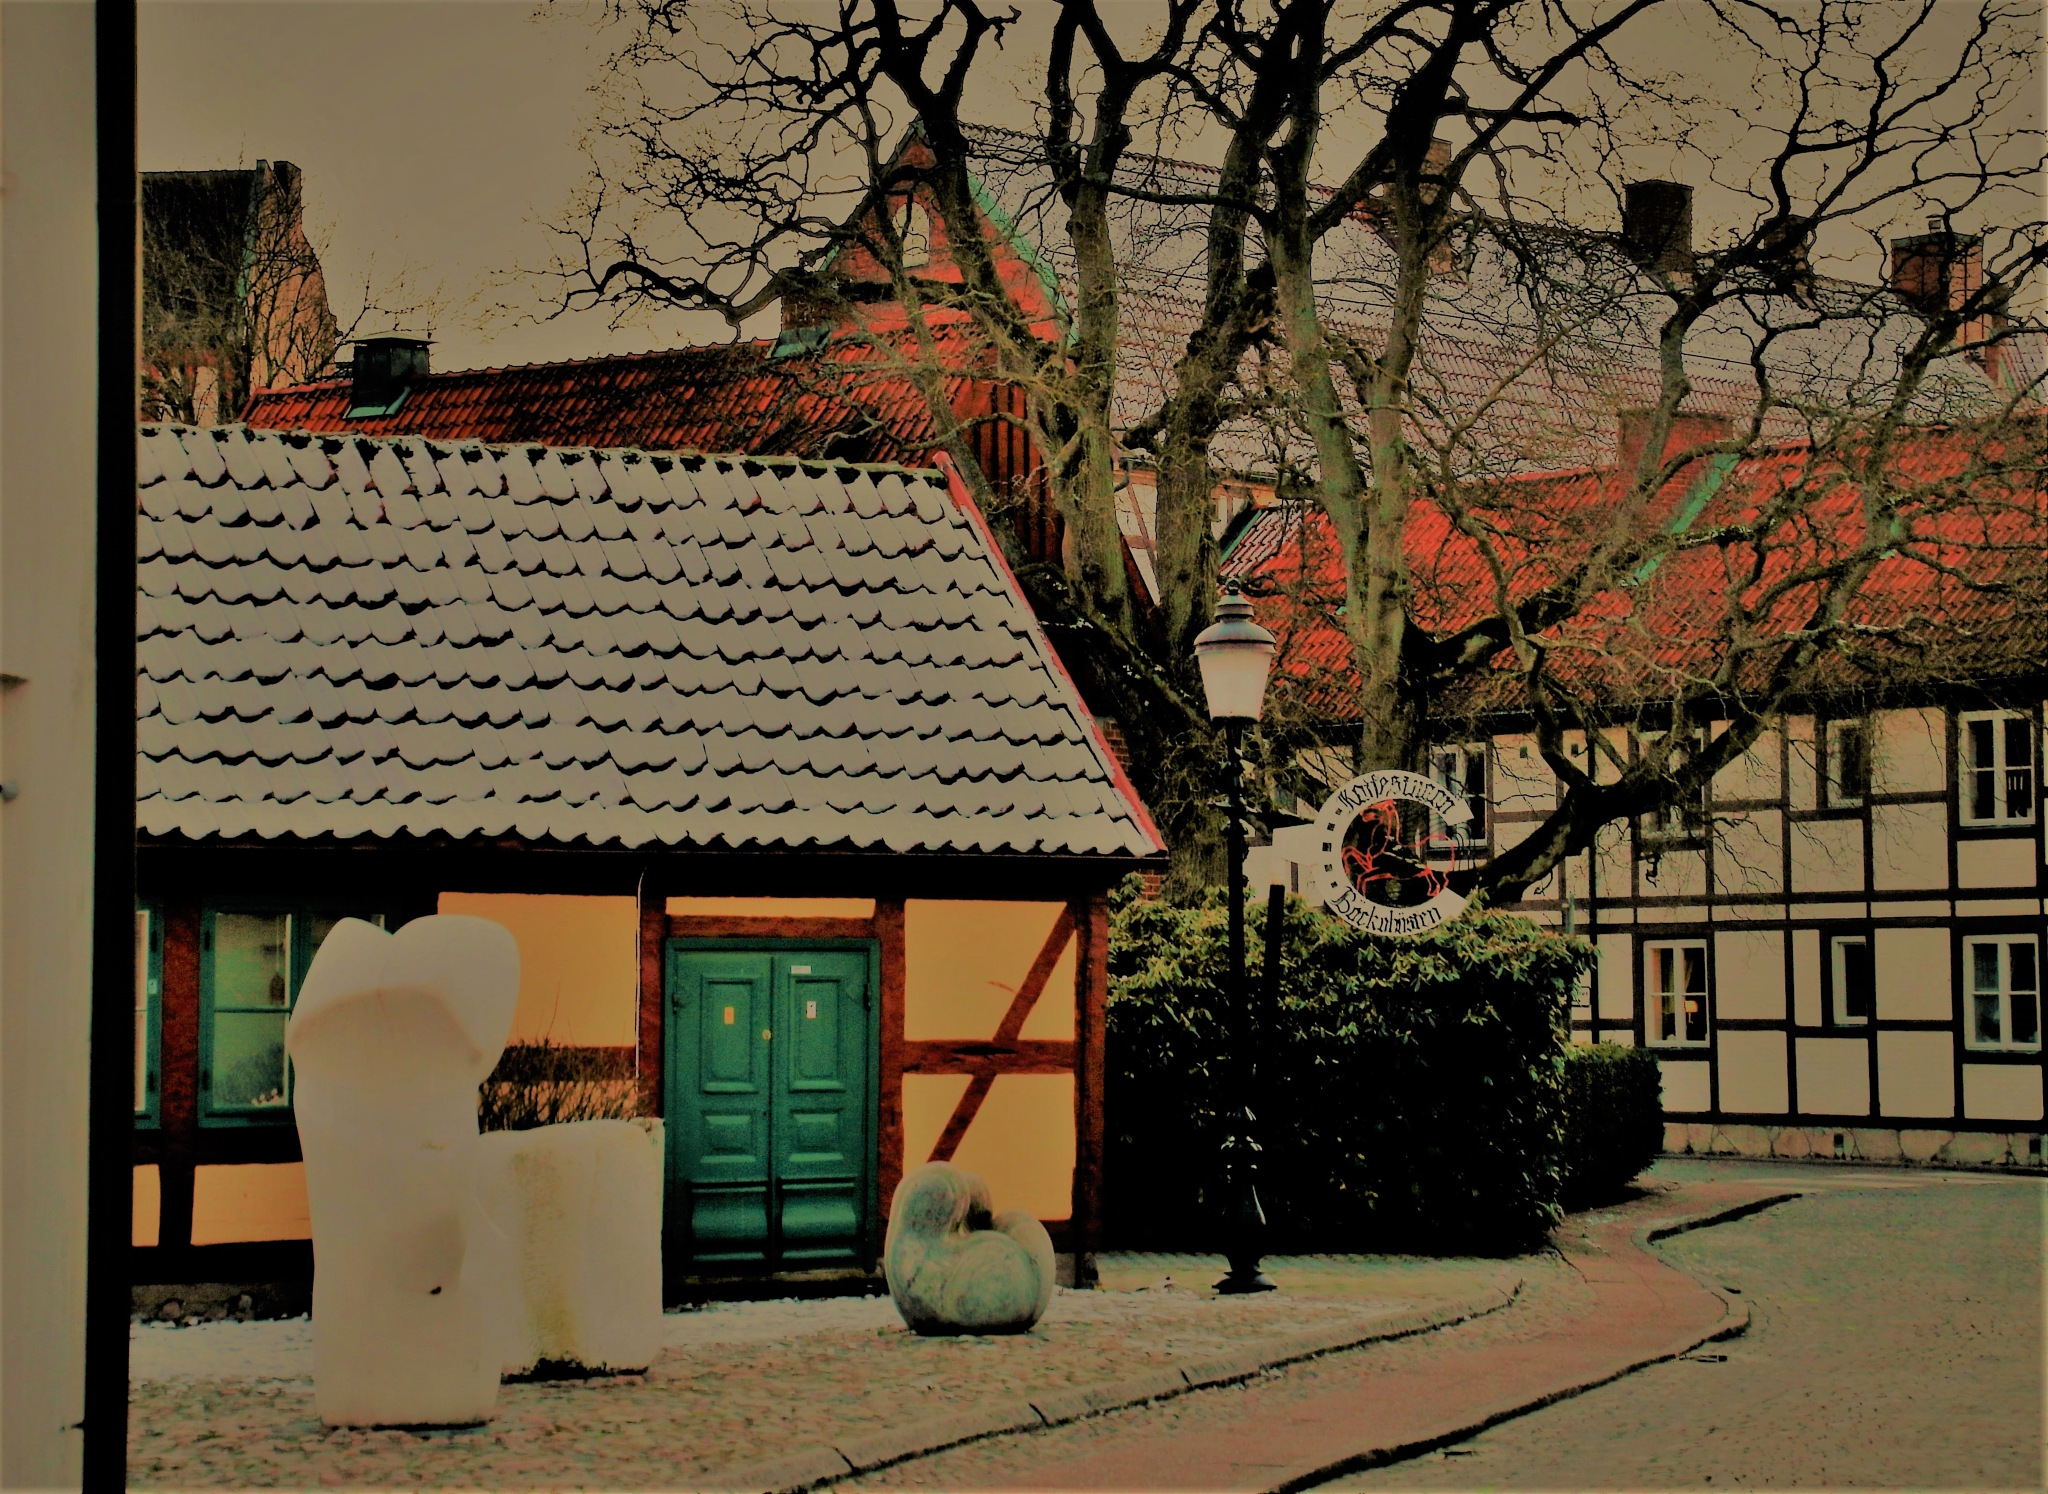 One of the small streets in my Hometown Ystad. by KerstinP.